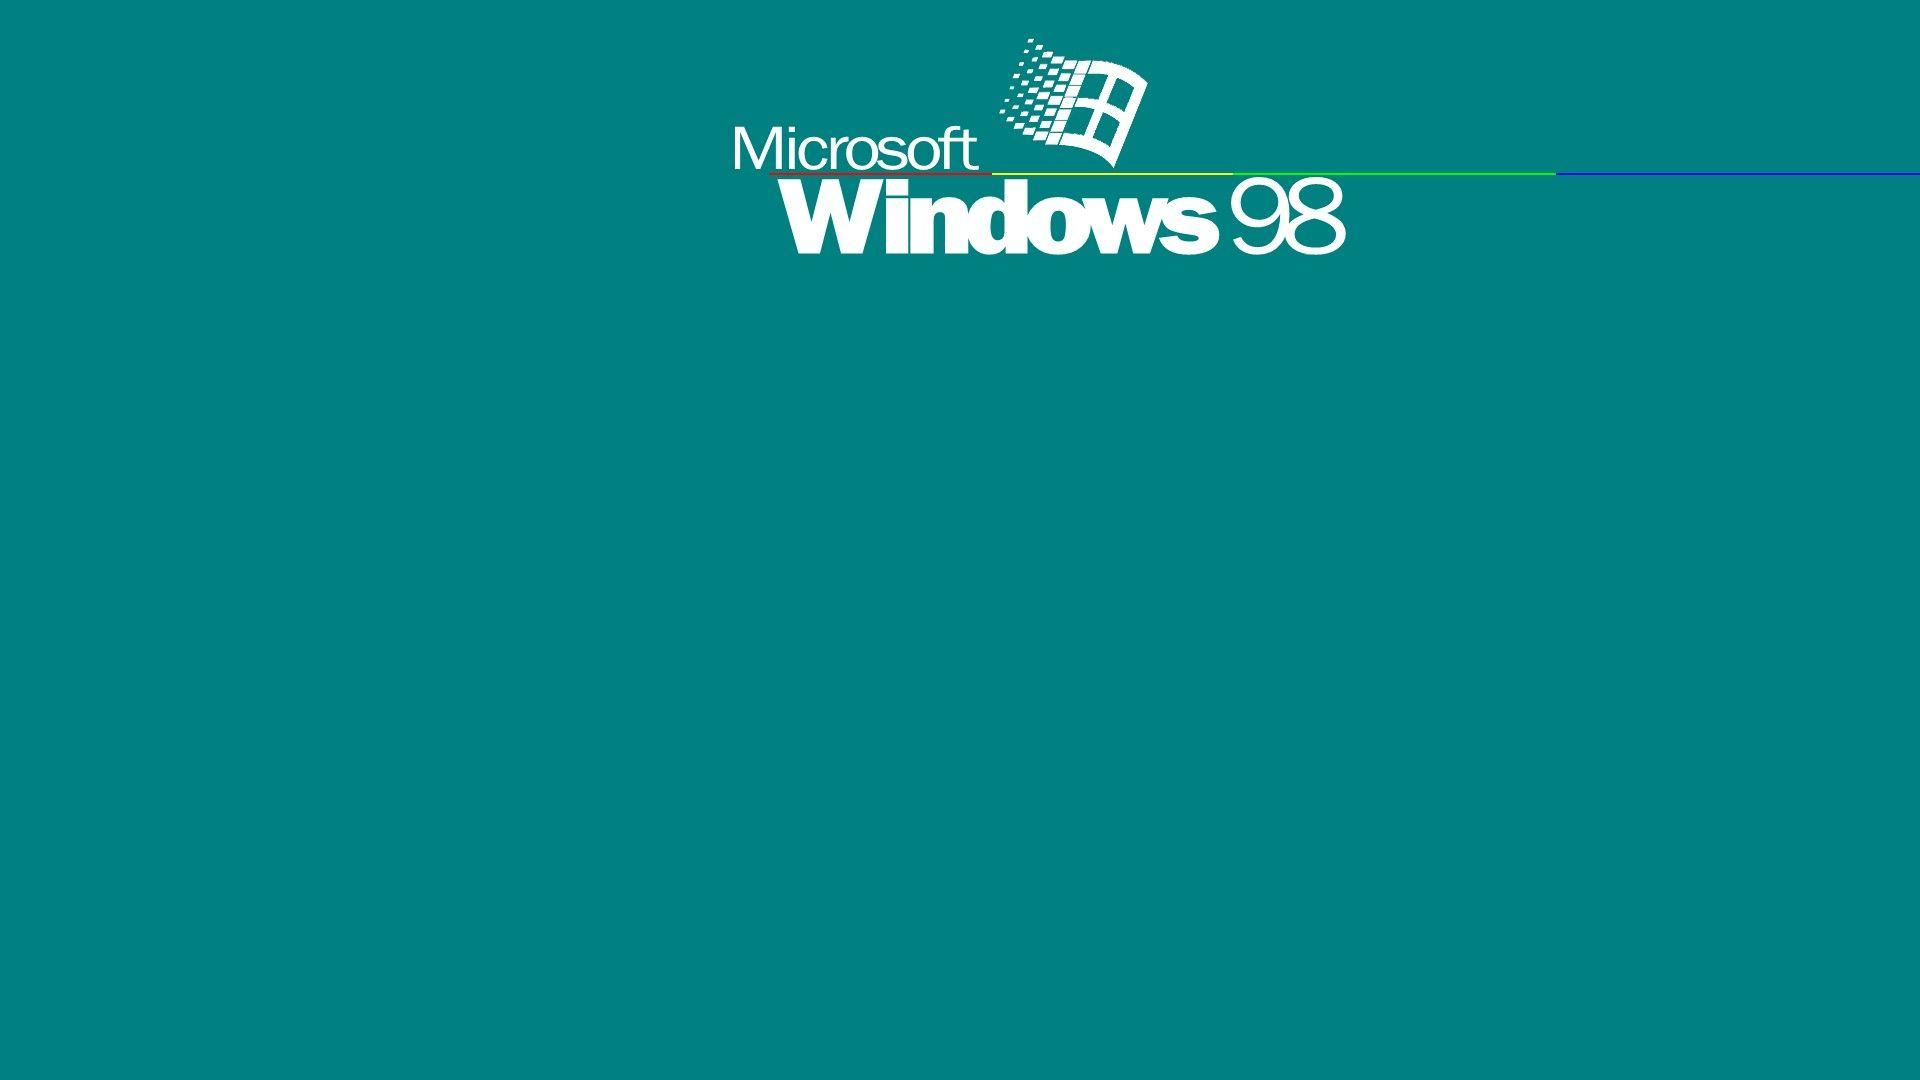 Windows 95 backgrounds ·① Download free full HD backgrounds for